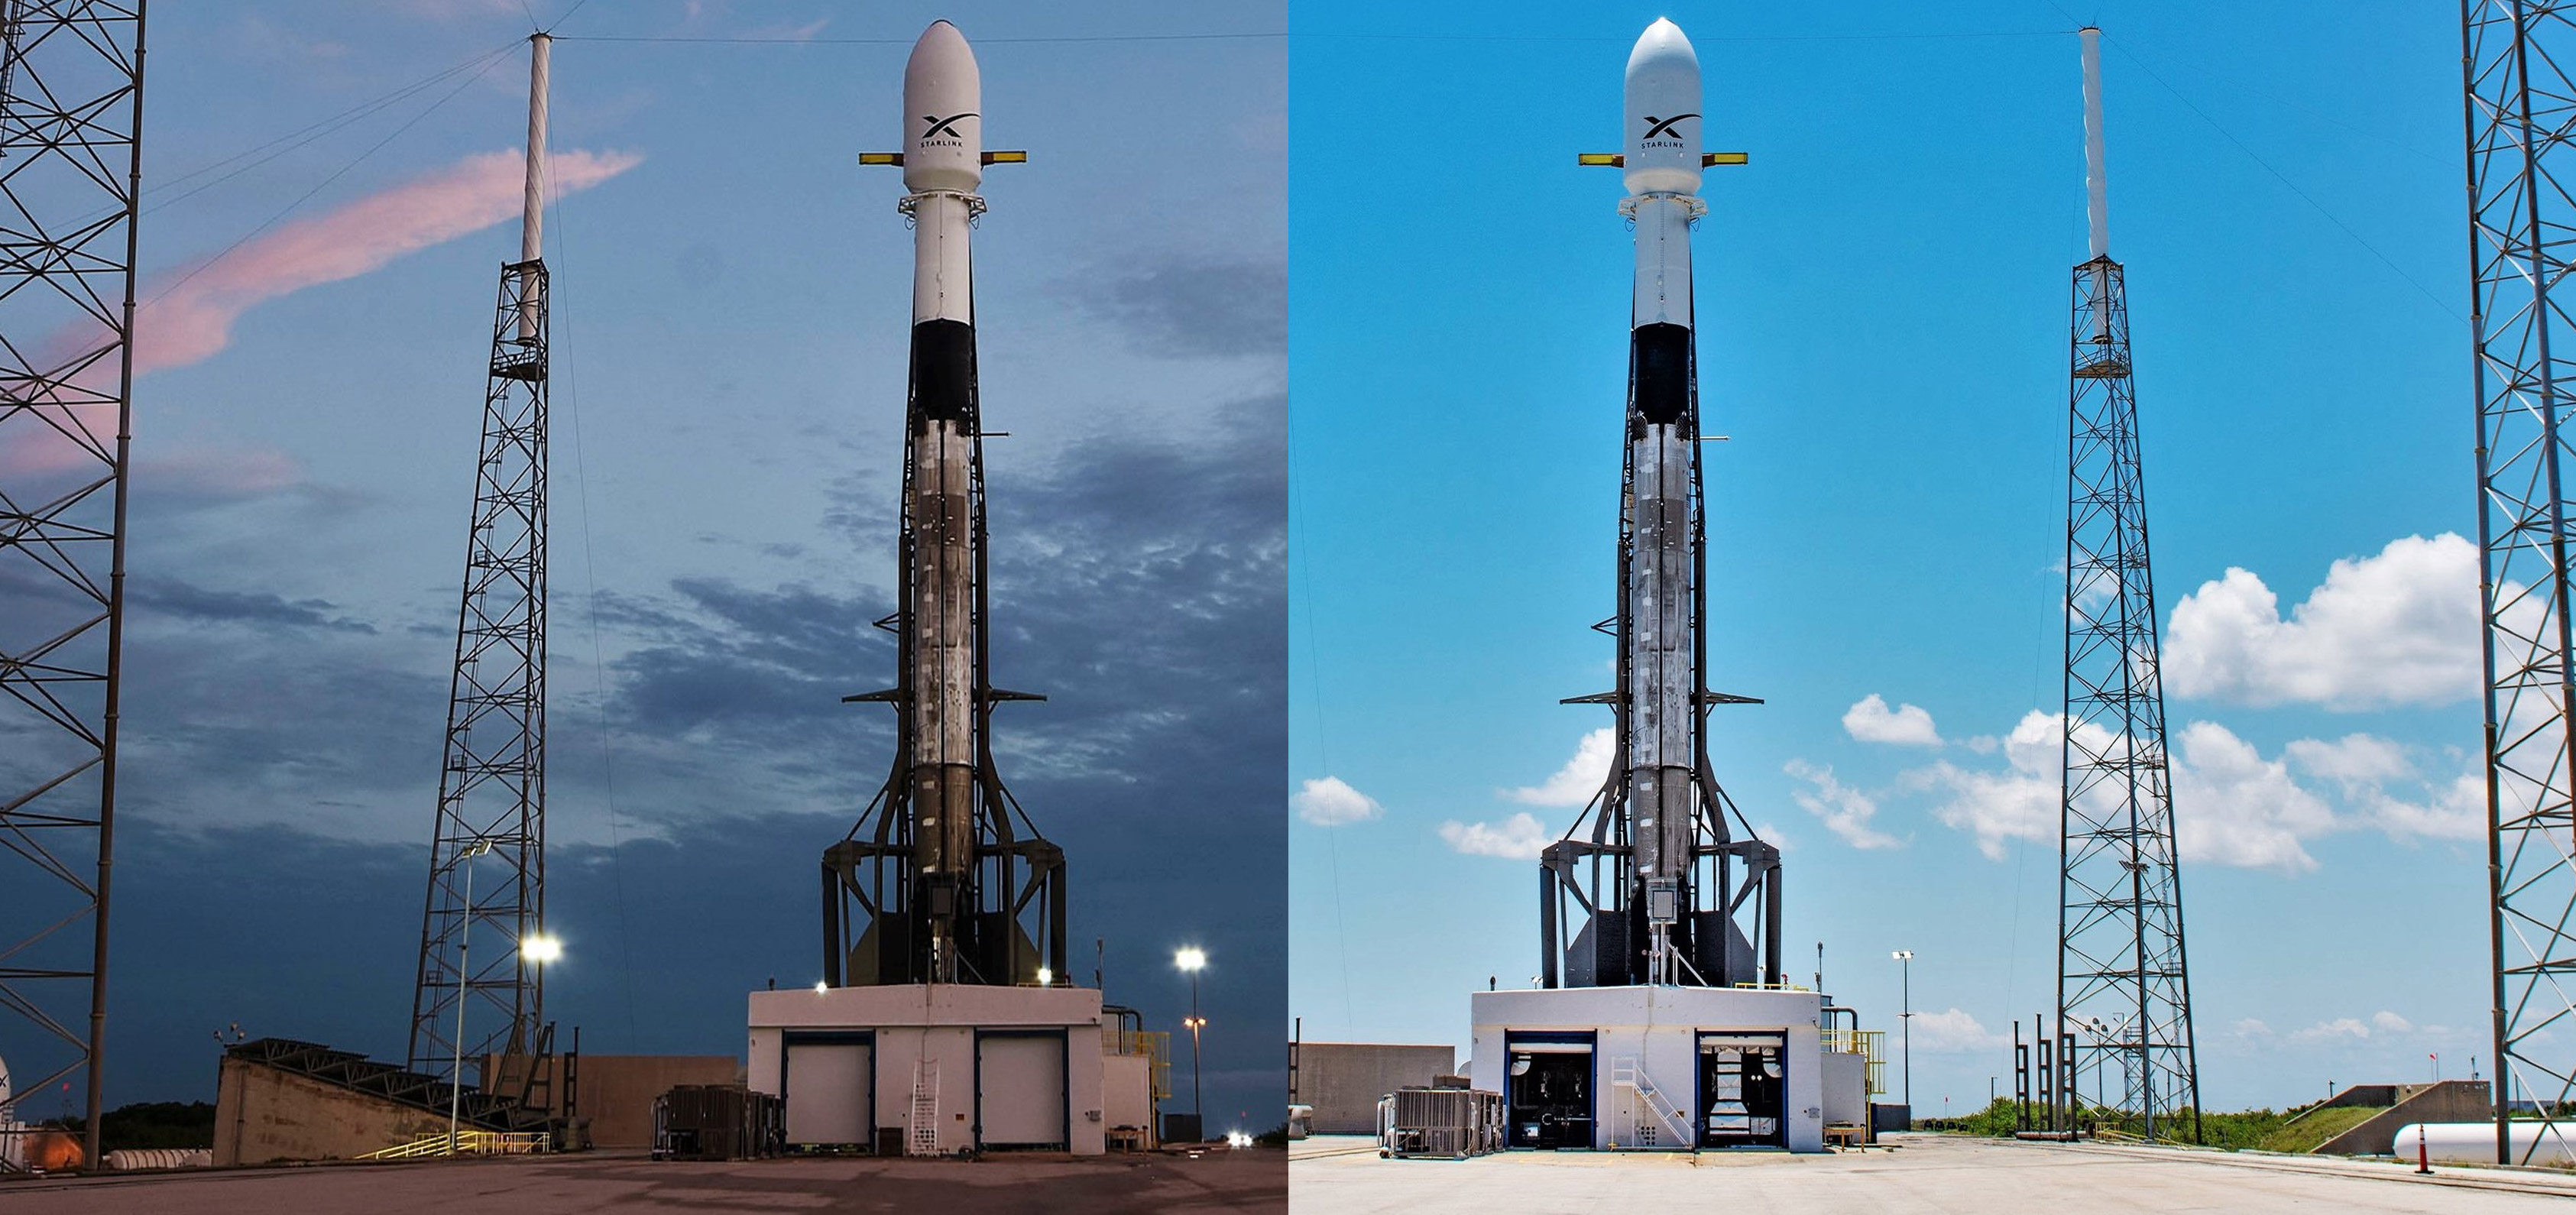 Falcon 9 B1049 Starlink v0.9 LC40 May 15 May 16 (SpaceX) 1